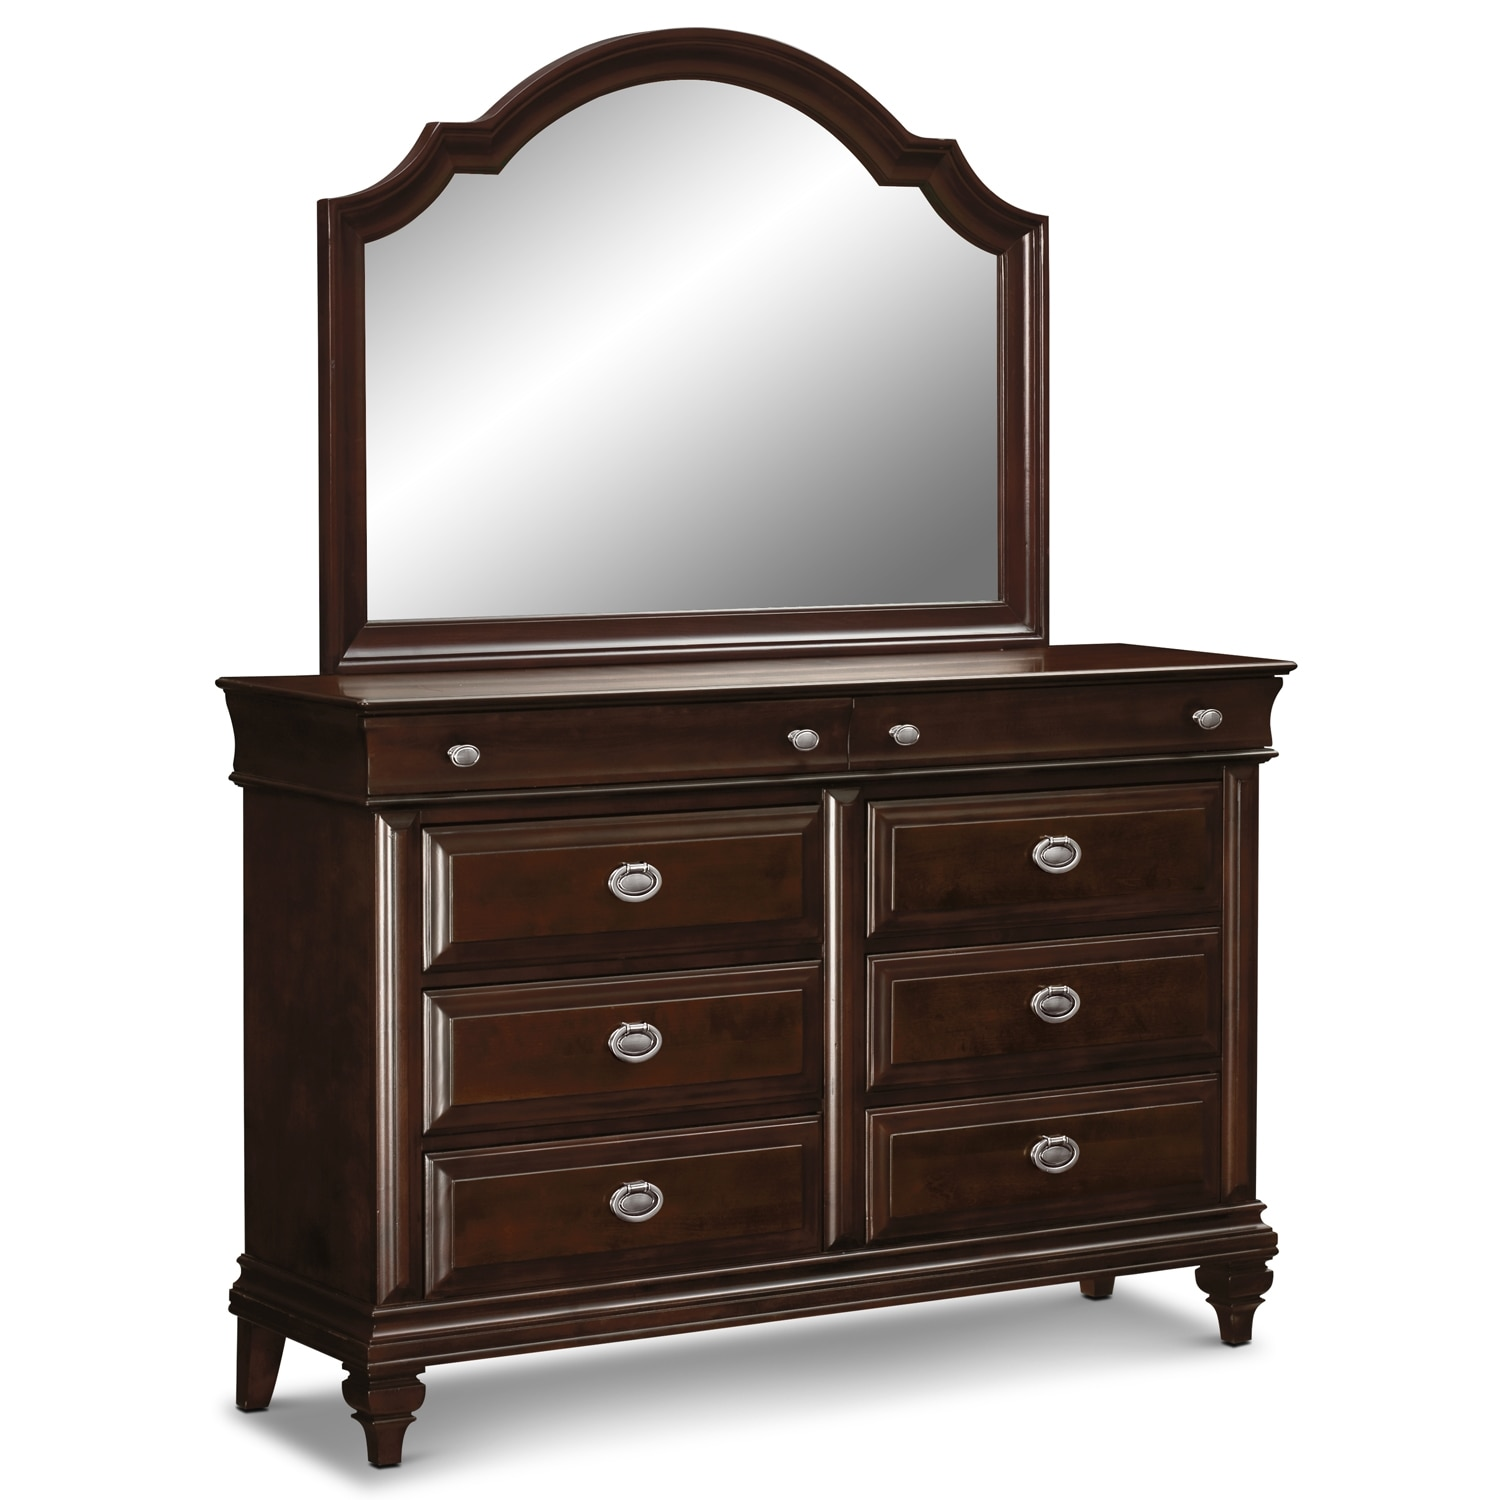 [Manhattan Dresser & Mirror]